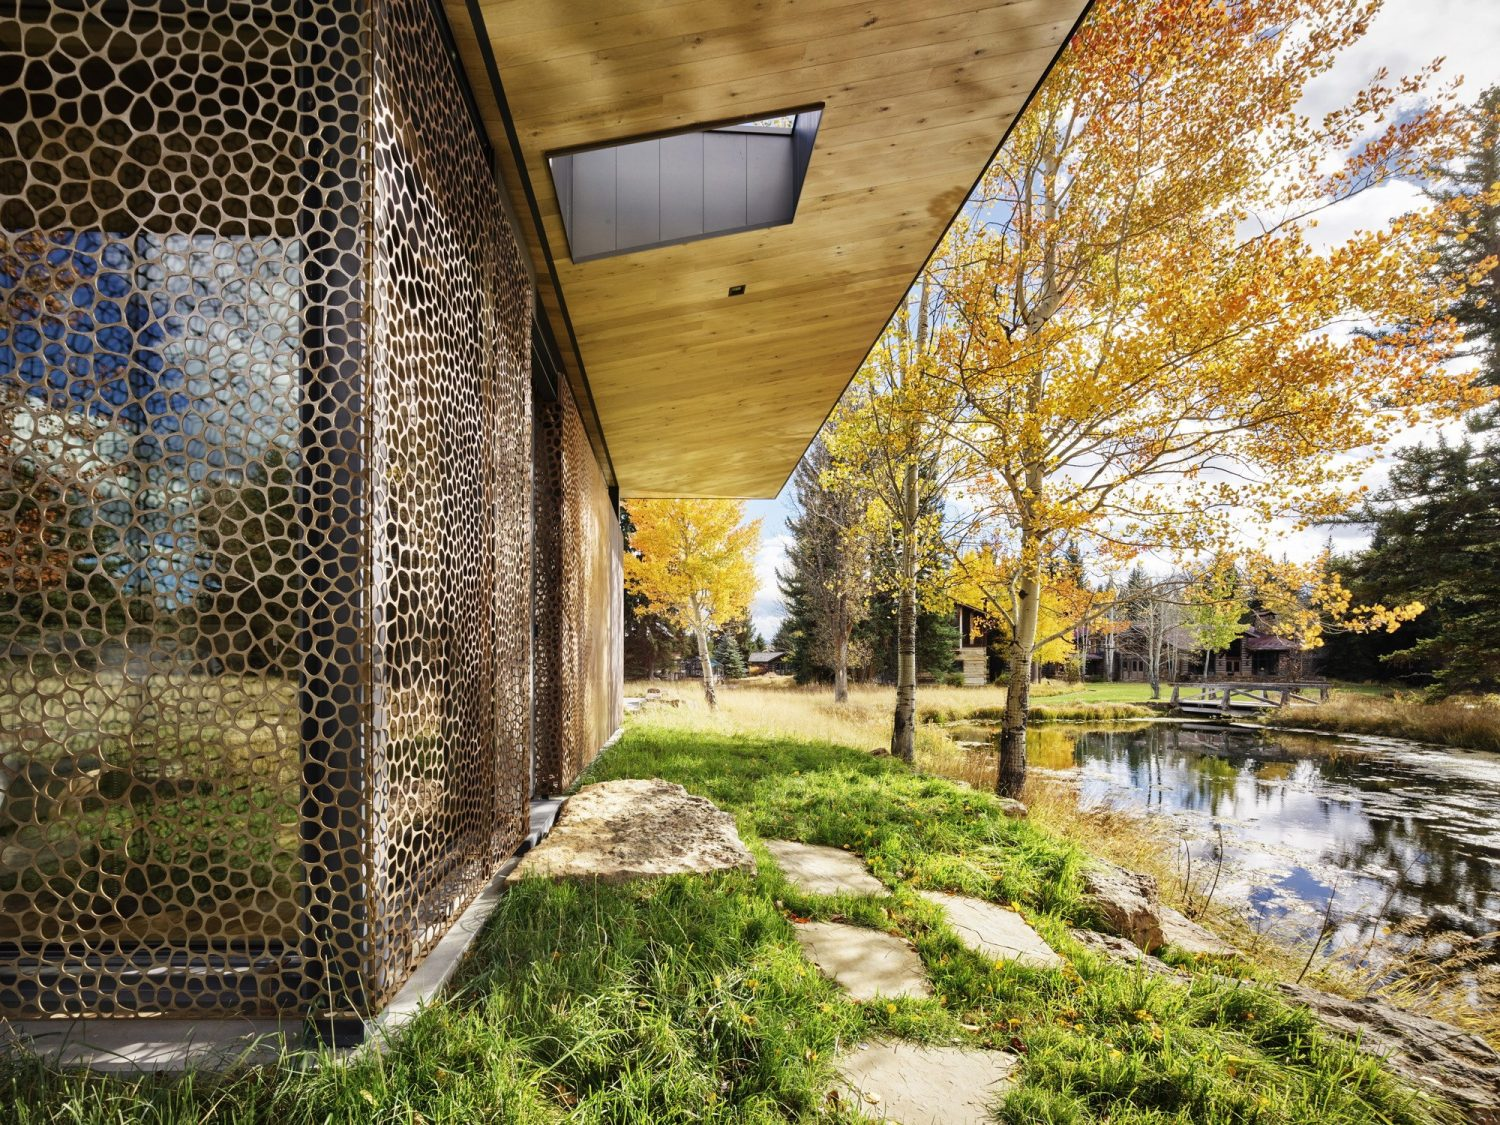 Queen's Lane Pavilion by CLB Architects